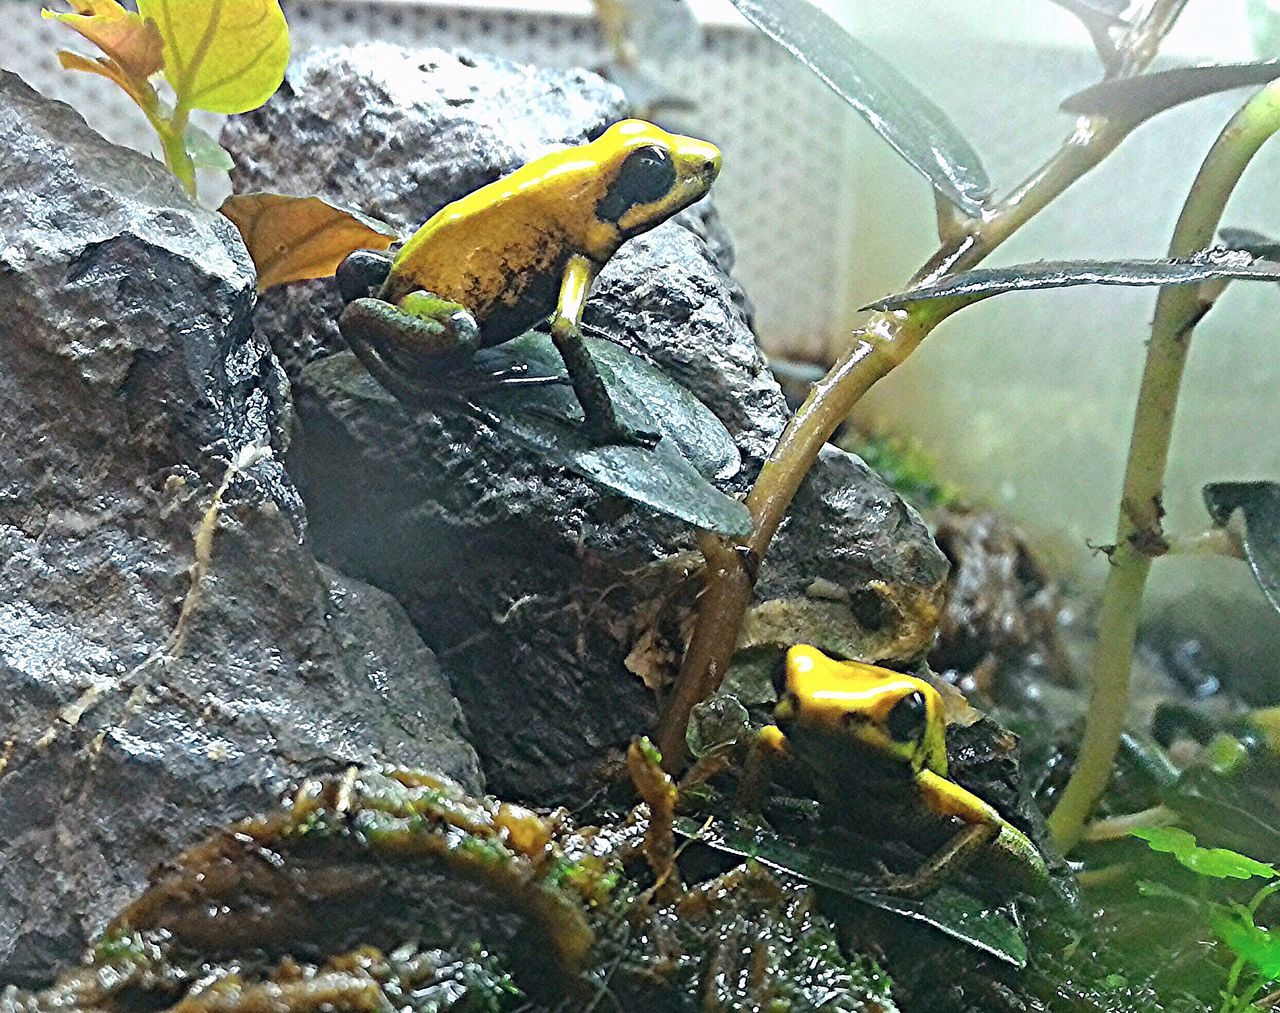 Frog Frogs Frog Perspective Frog Eyes Captivity Animal Themes Animals In The Wild No People Zoology Biology Zoomarket Nature Yellow Color Amphibian Close-up Color Photography Exotic Creatures Exotic Exotic Pets Animal Photography Animals Posing